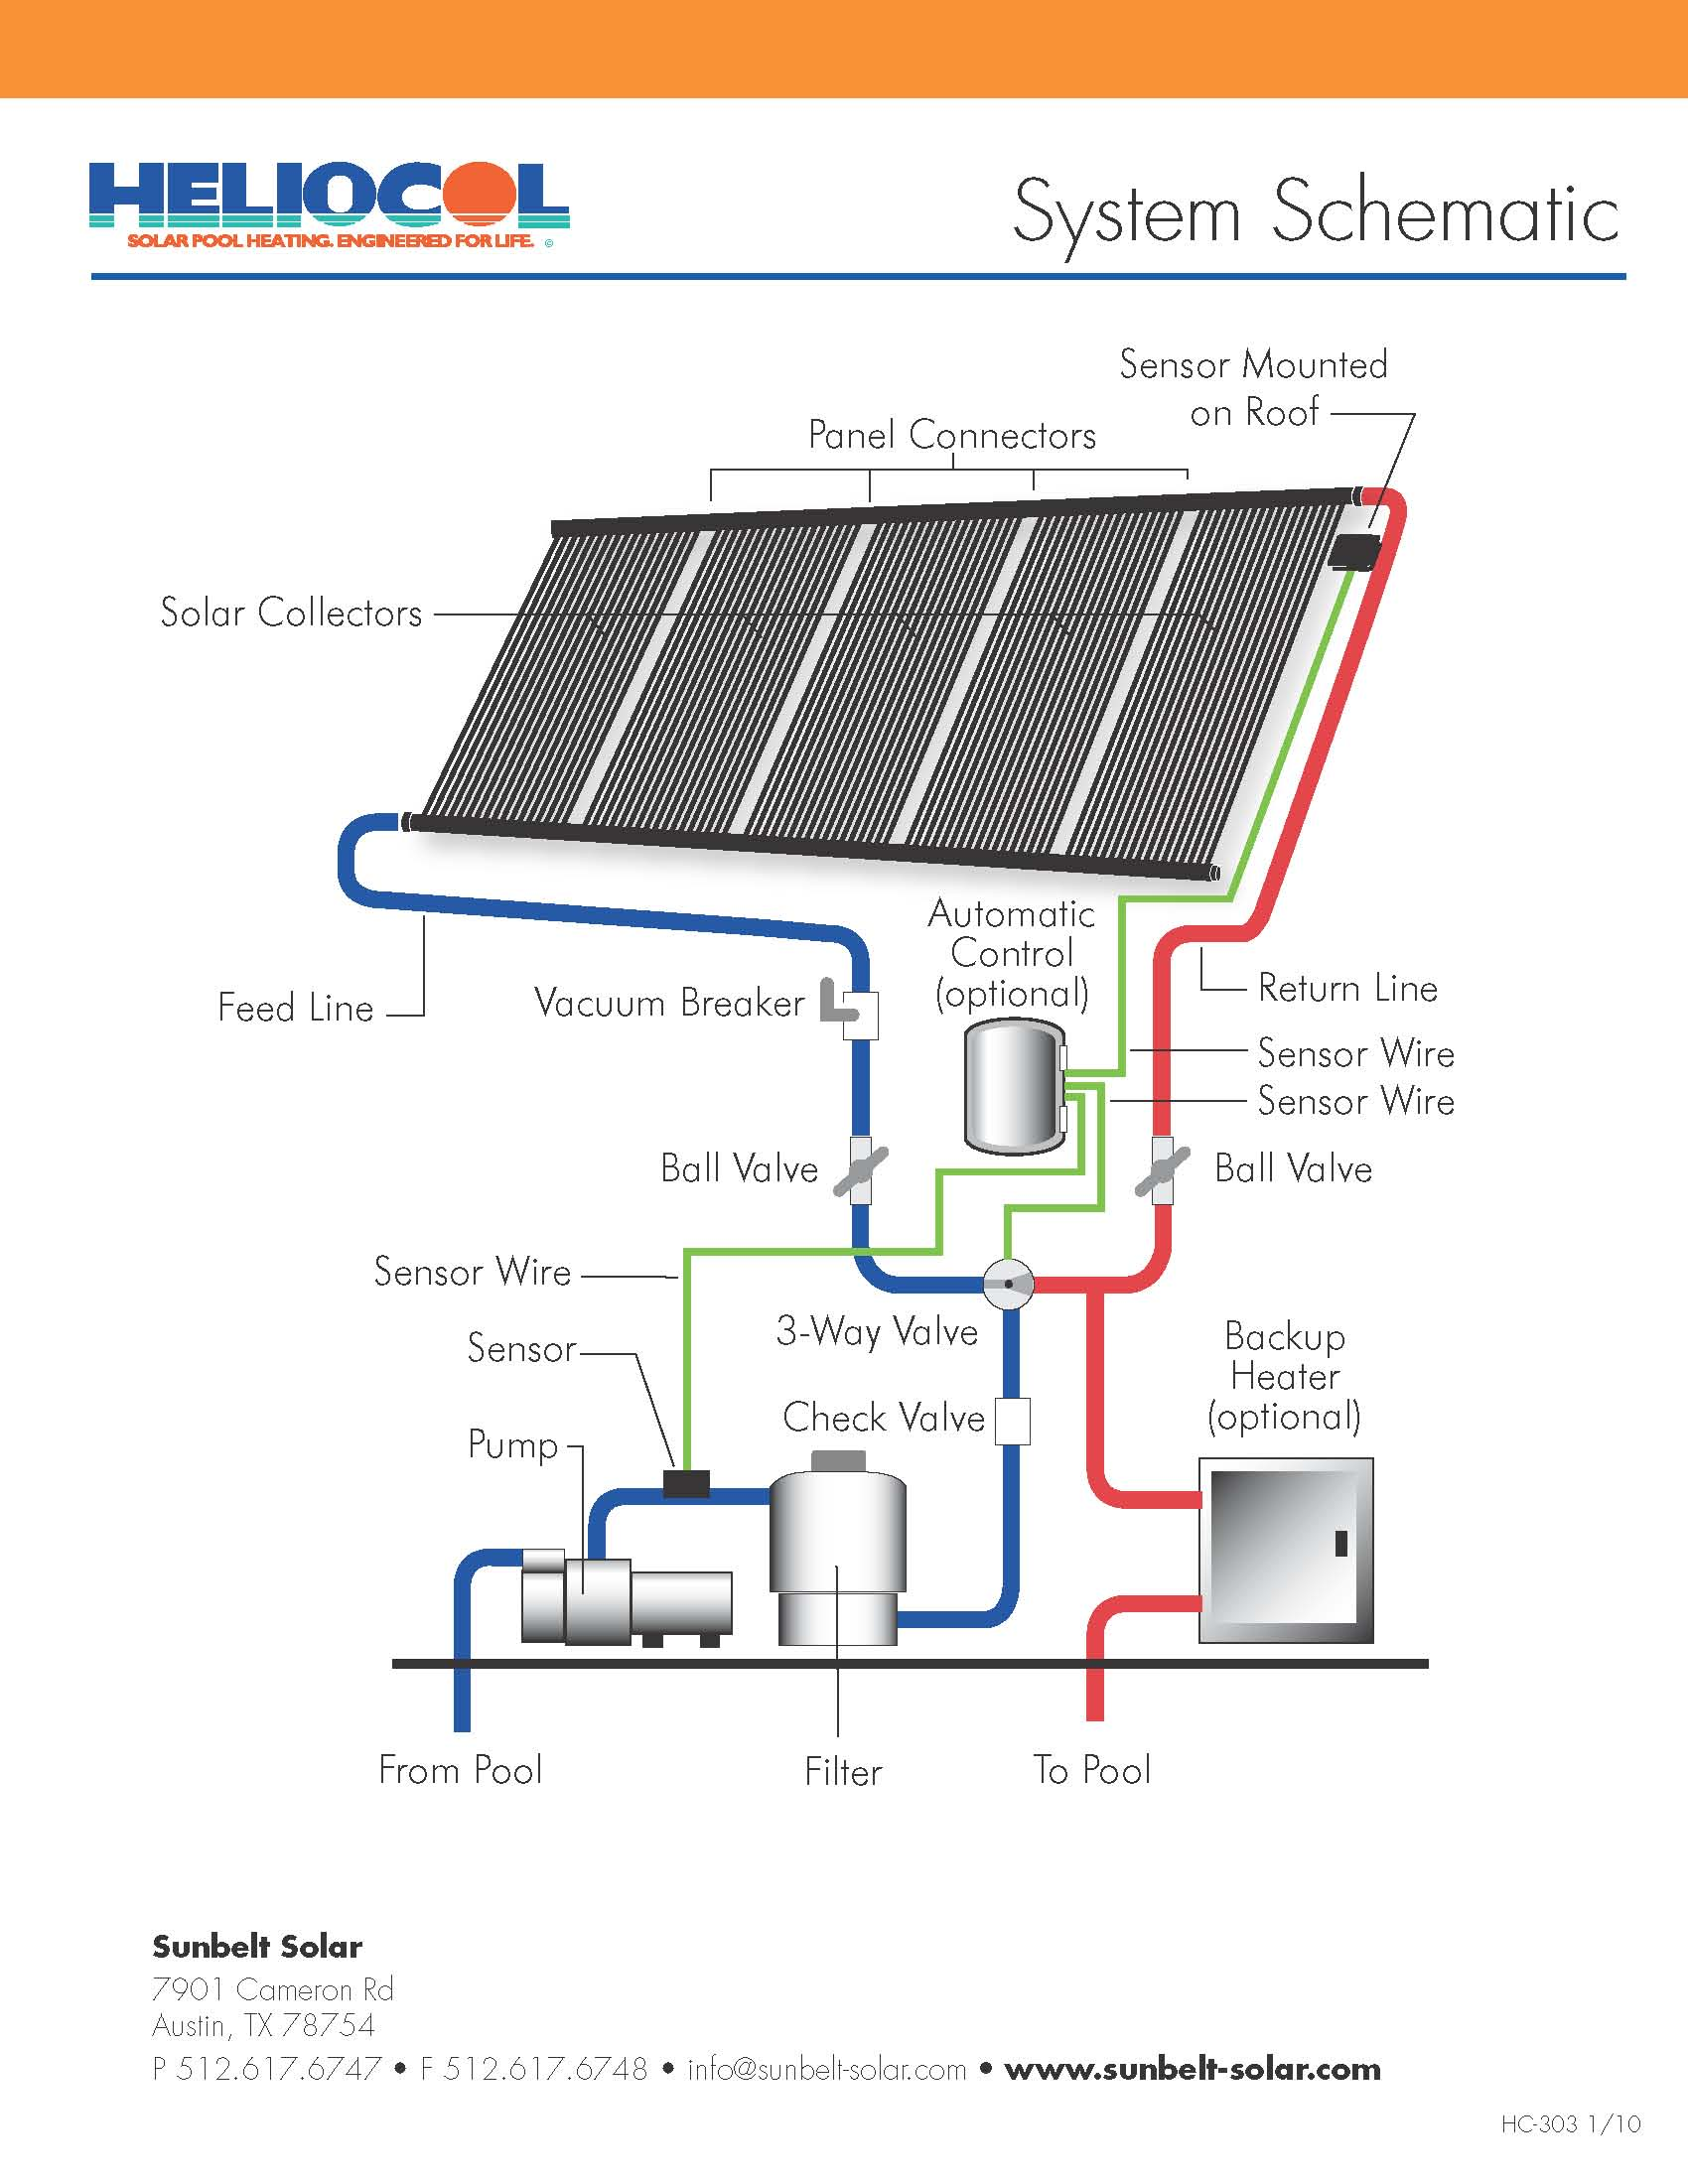 electrical panel installation guide with Heliocol Solar Pool Heaters on Residential Wiring Diagrams And Schematics also Hp Slimline Desktop in addition 07 09 24 Trunk Cable Planning Installation further Electronic Steering Manuals in addition Medium Voltage Switchgear Room Design Guide.